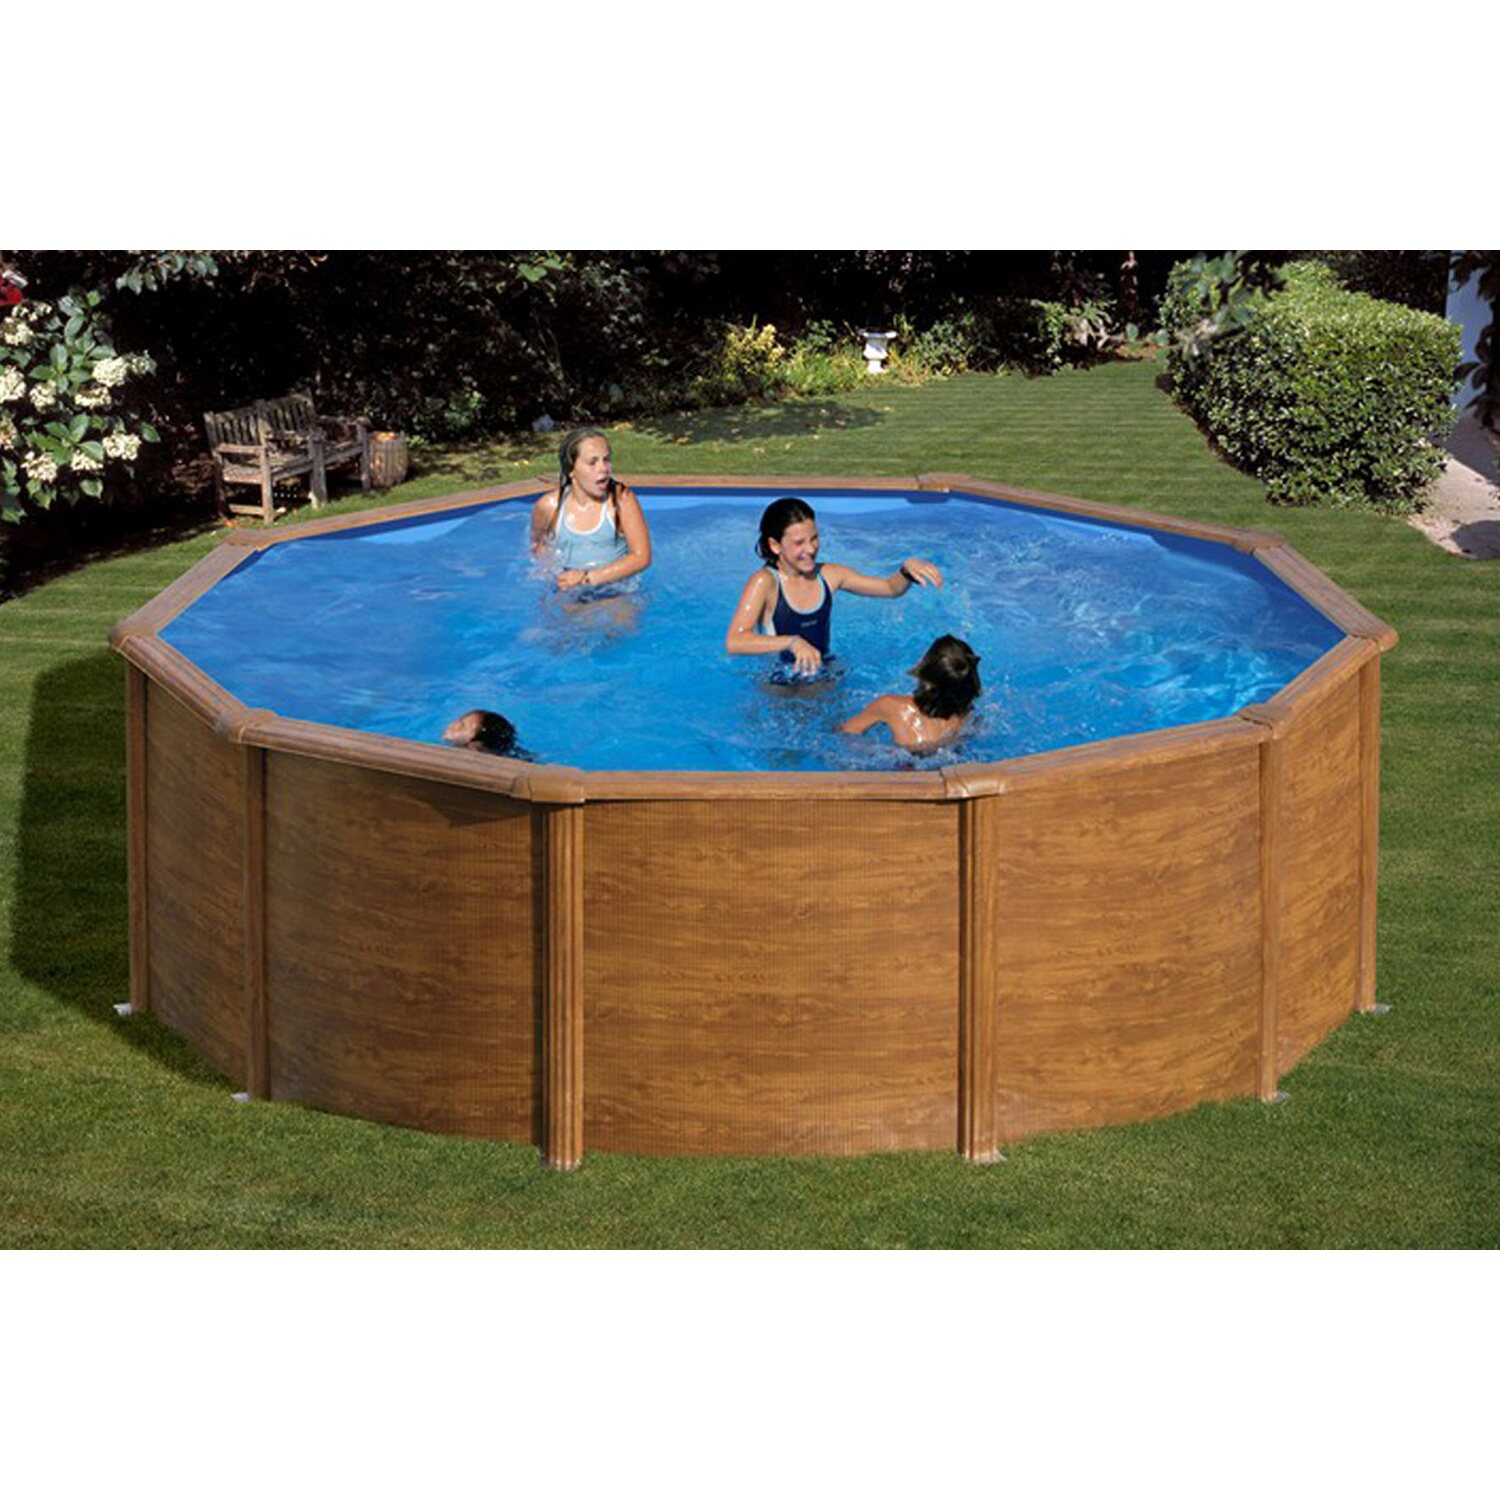 Summer fun stahlwand pool set holz dekor rhodos for Pool obi baumarkt